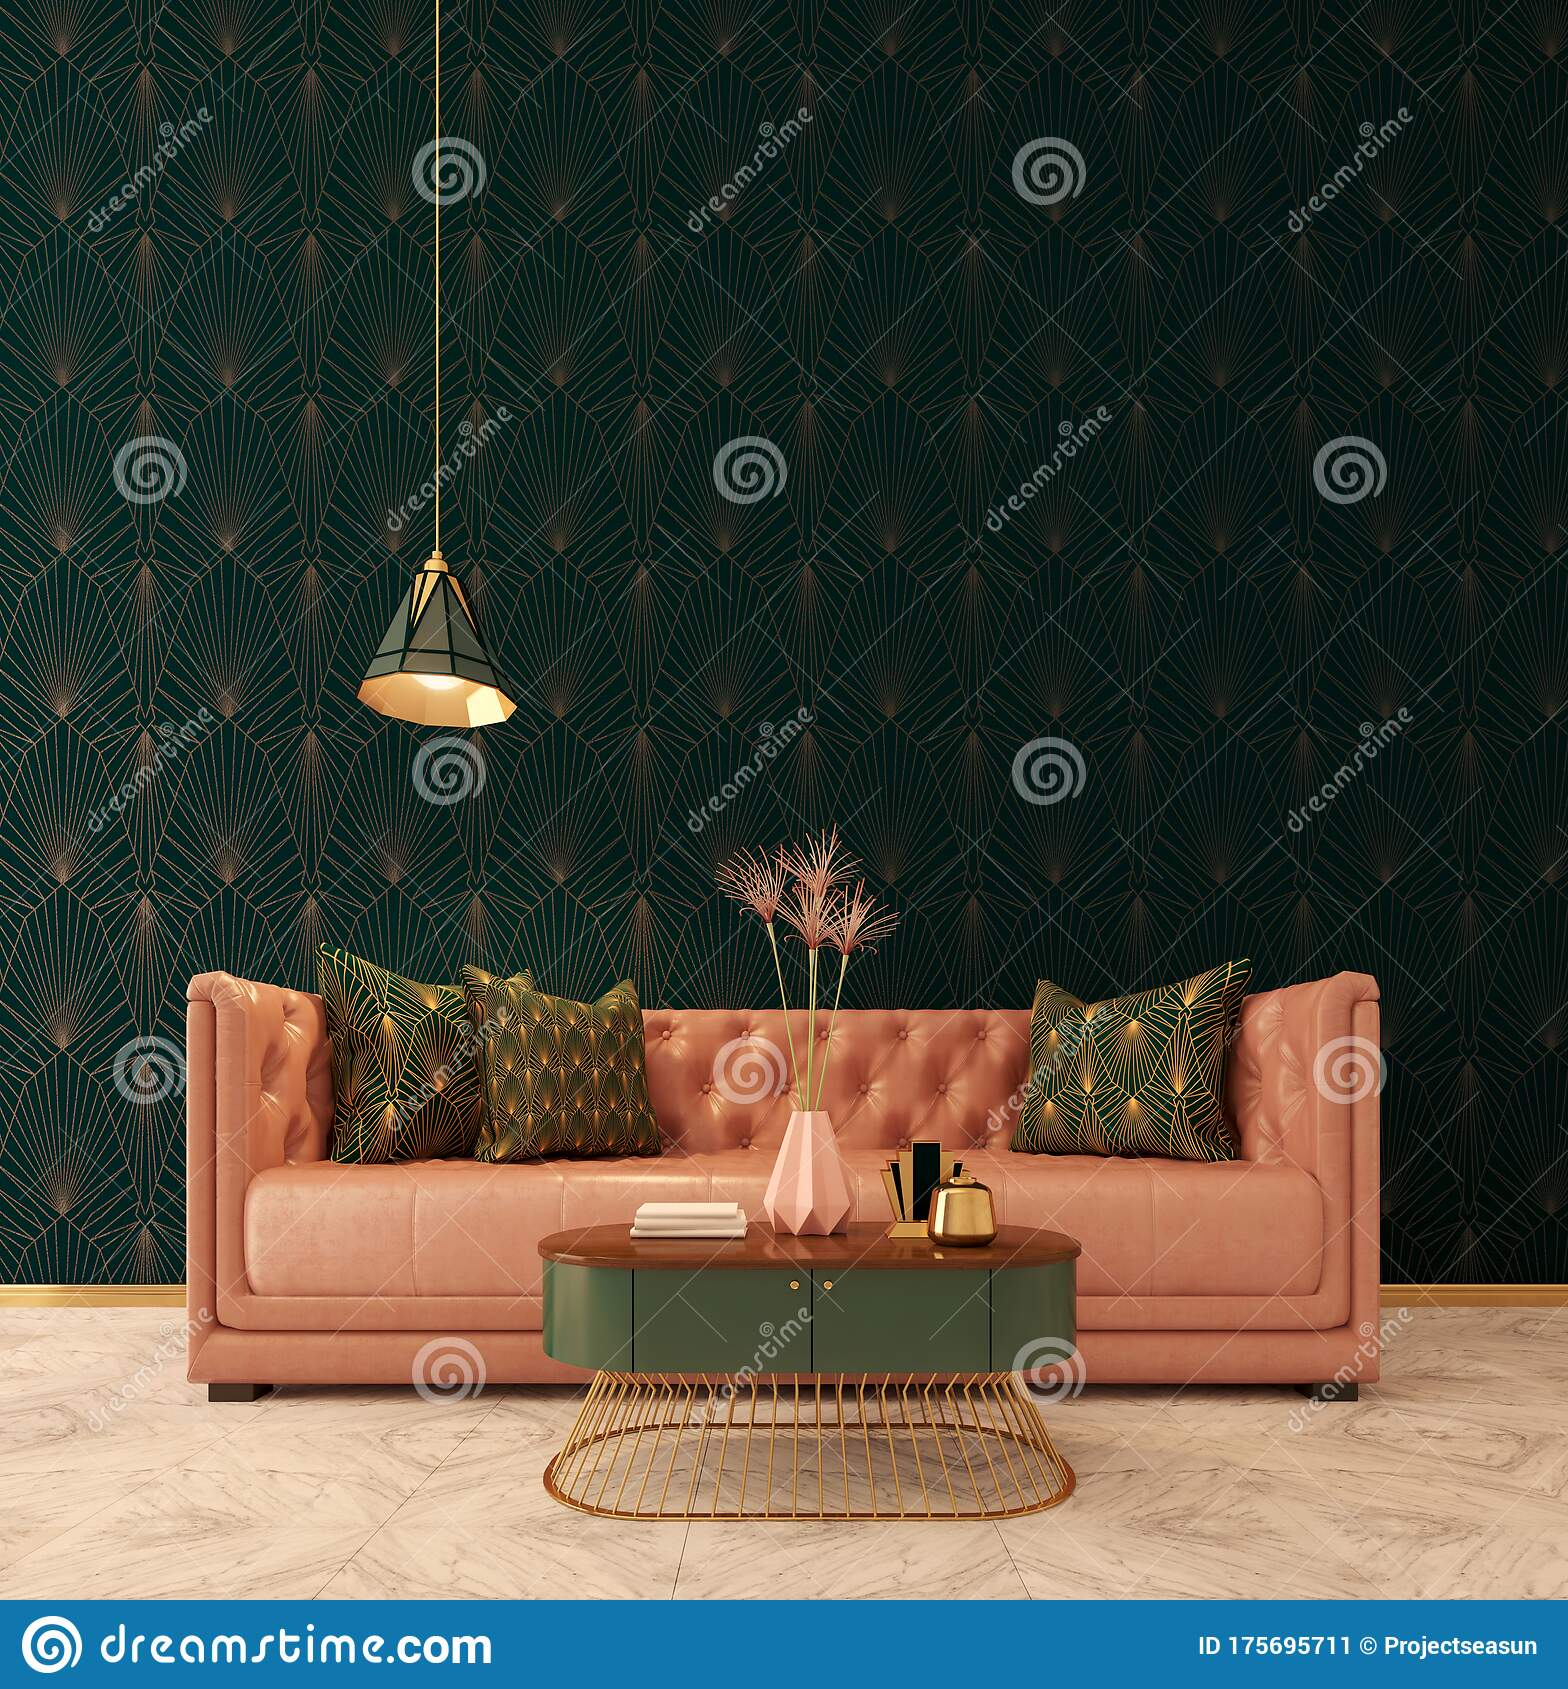 Classic Interior Art Deco Style Sofa With Lamp And Vase On Table Marble Floor Dark Green Wall With Art Deco Pattern Stock Illustration Illustration Of Hotel Furniture 175695711